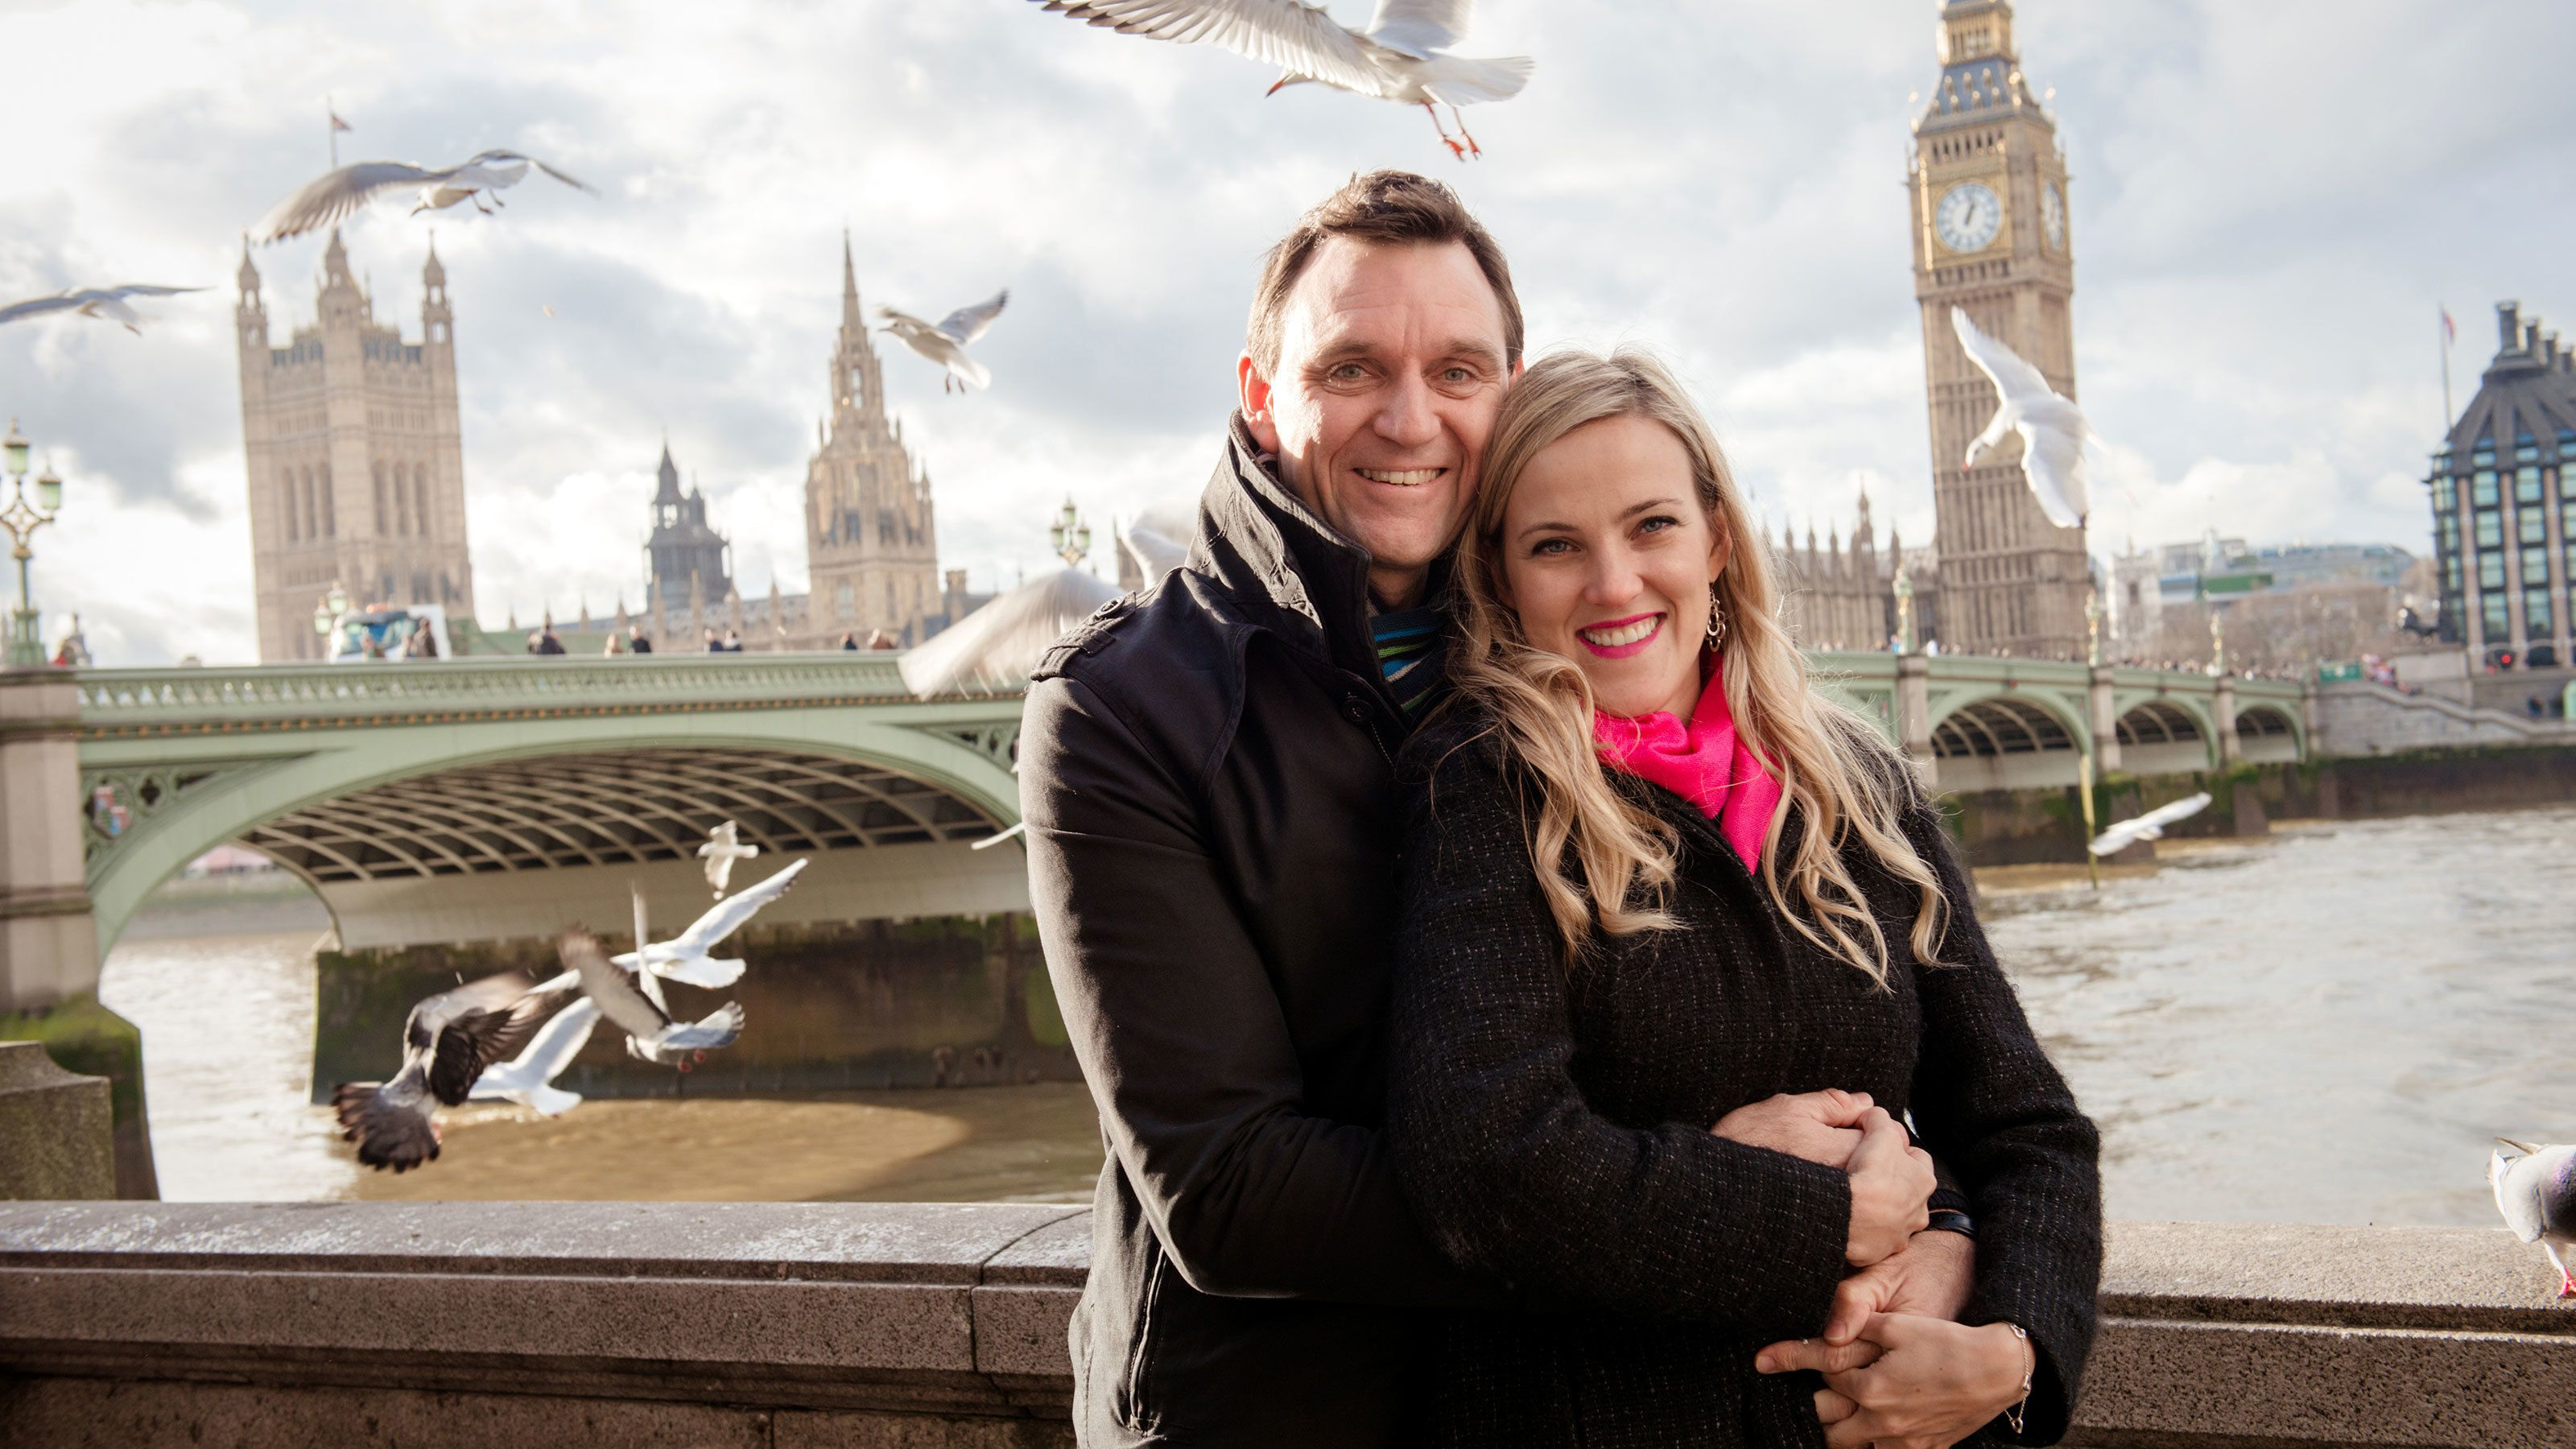 Couple on the banks of the thames river in London